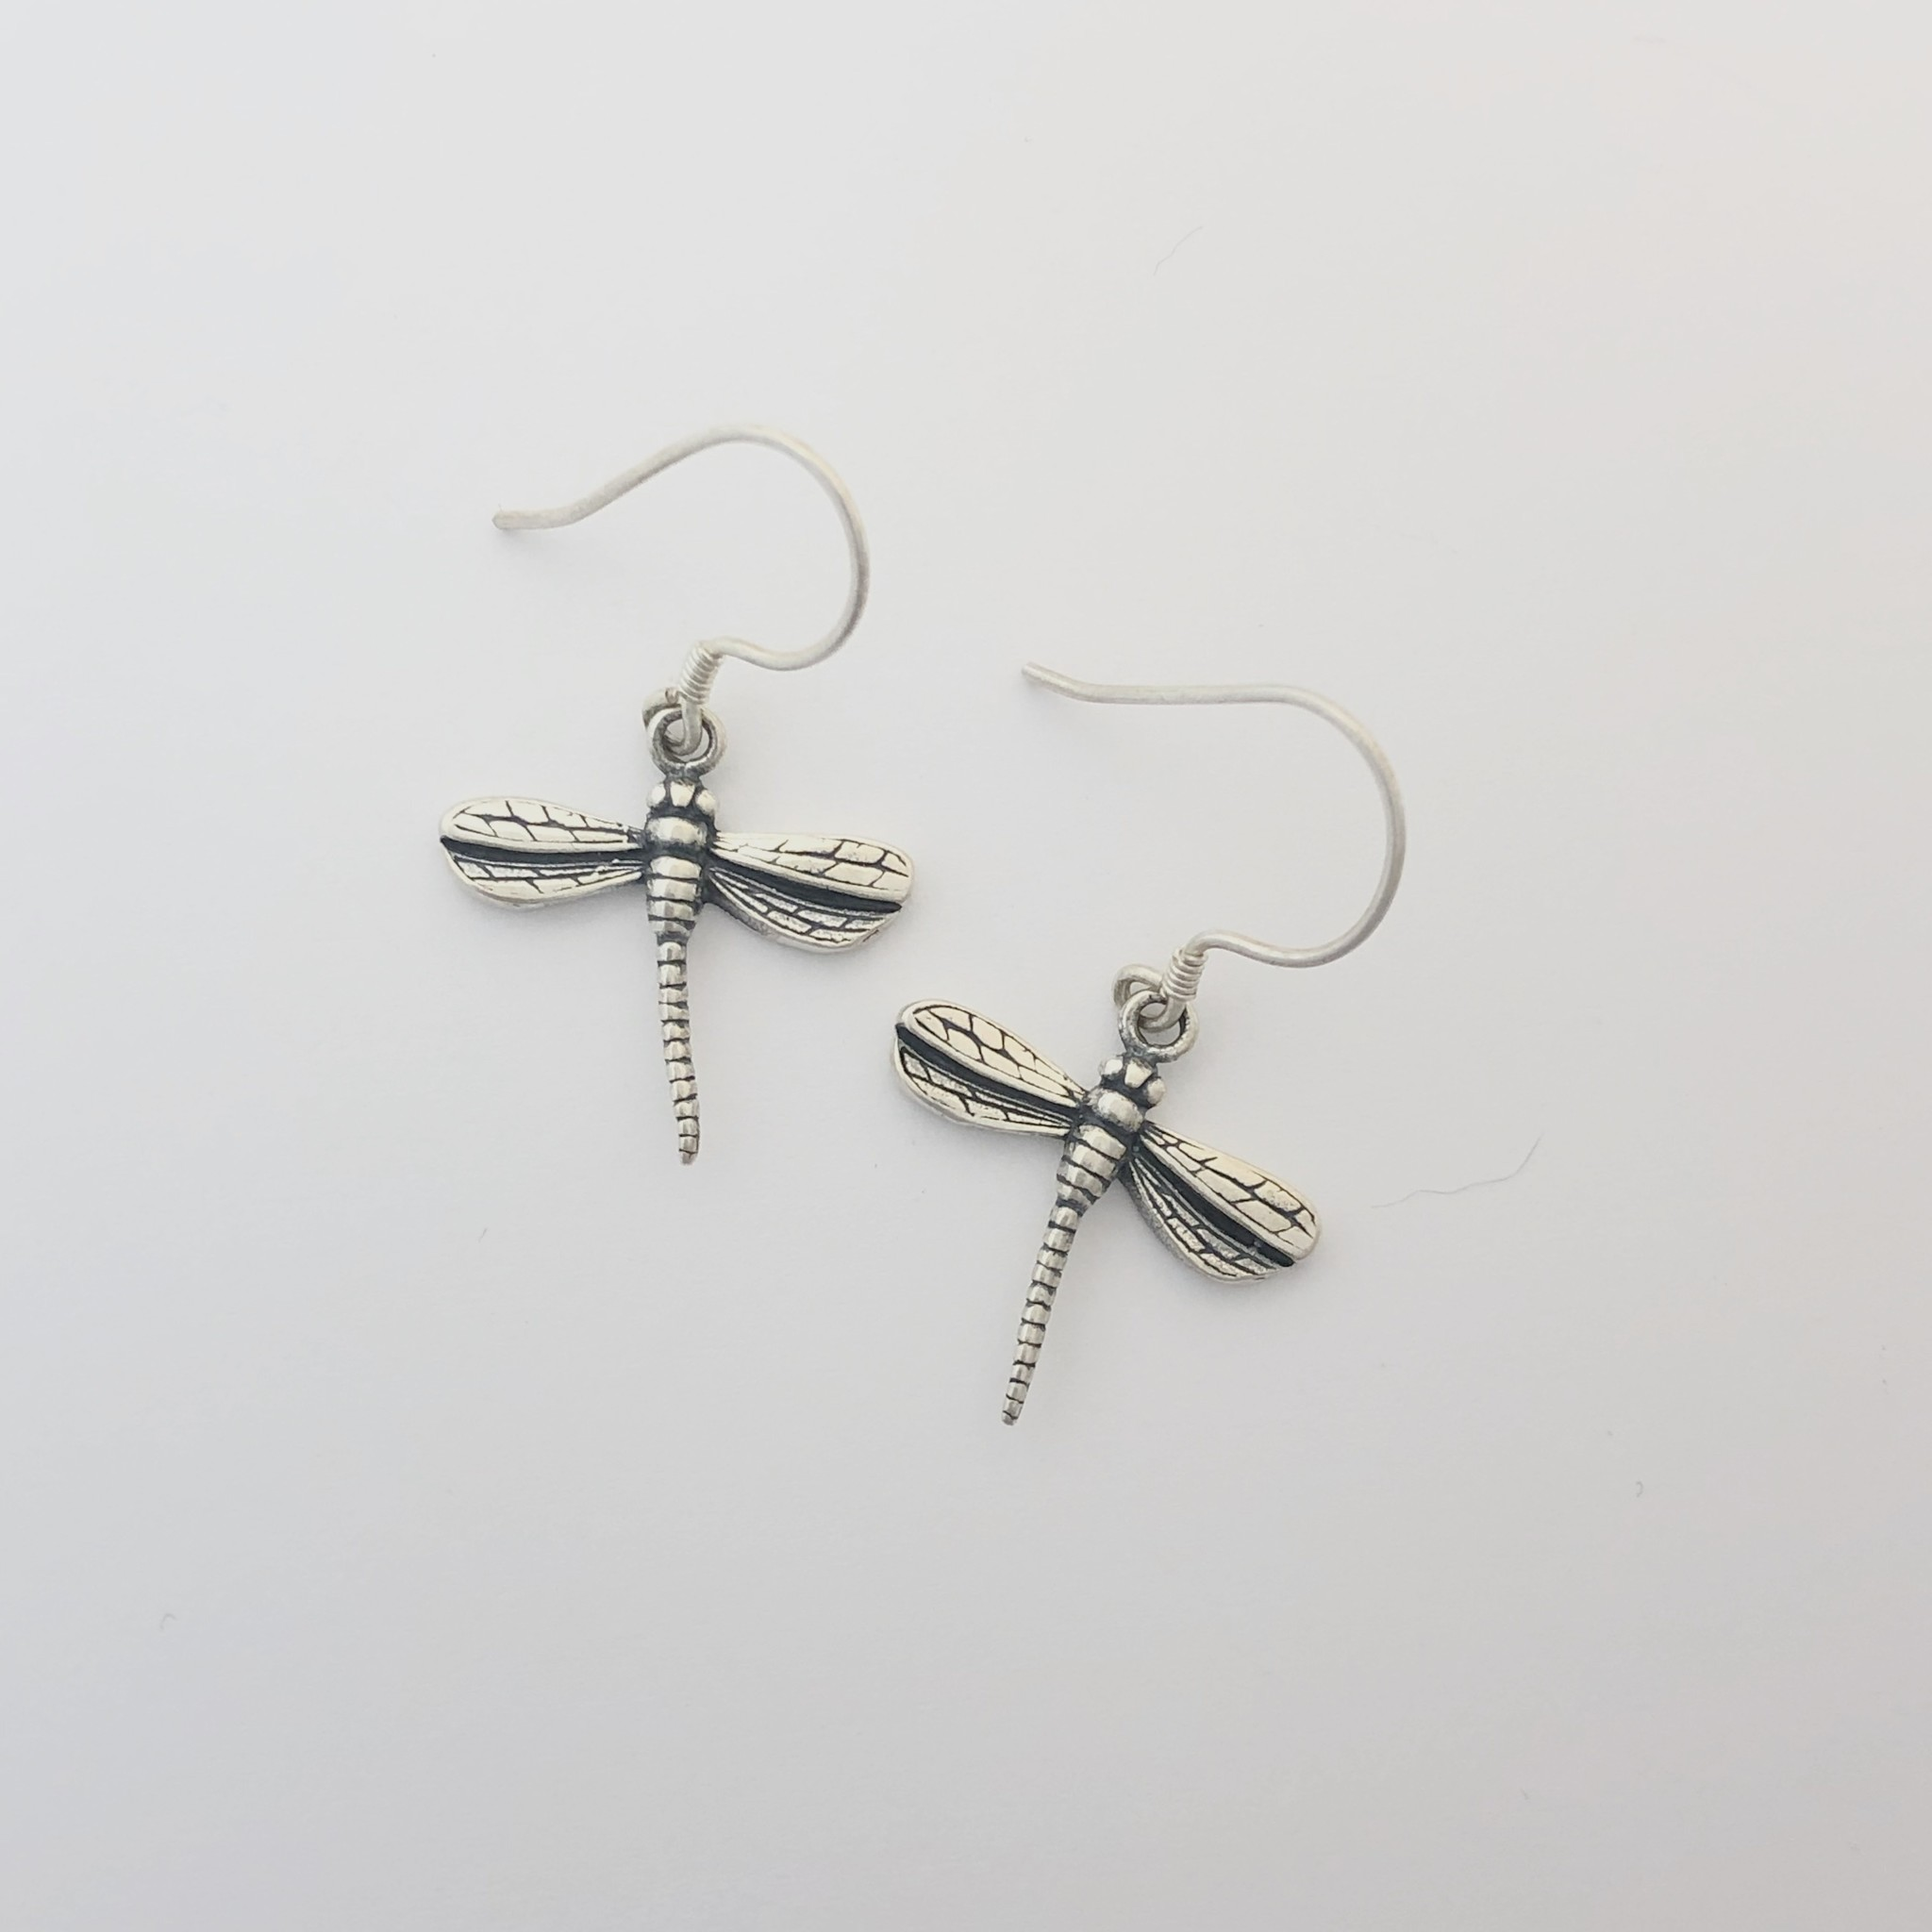 M Style Small Dragonfly Earrings